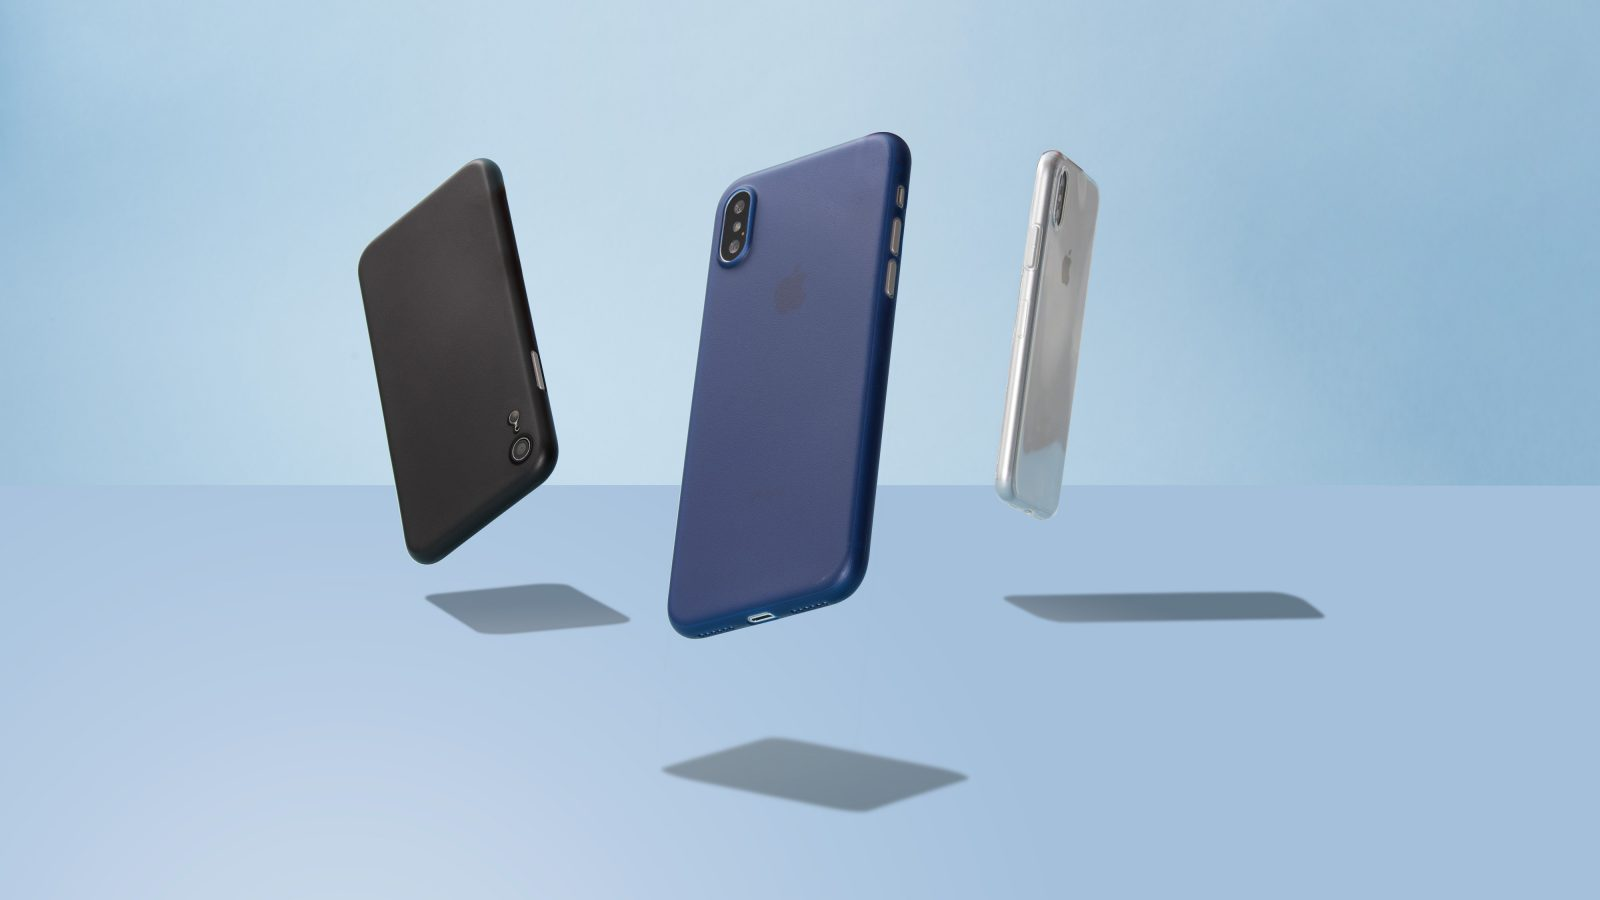 reputable site 67b78 767ee Totallee launches the thinnest cases for iPhone Xs Max, iPhone Xs ...